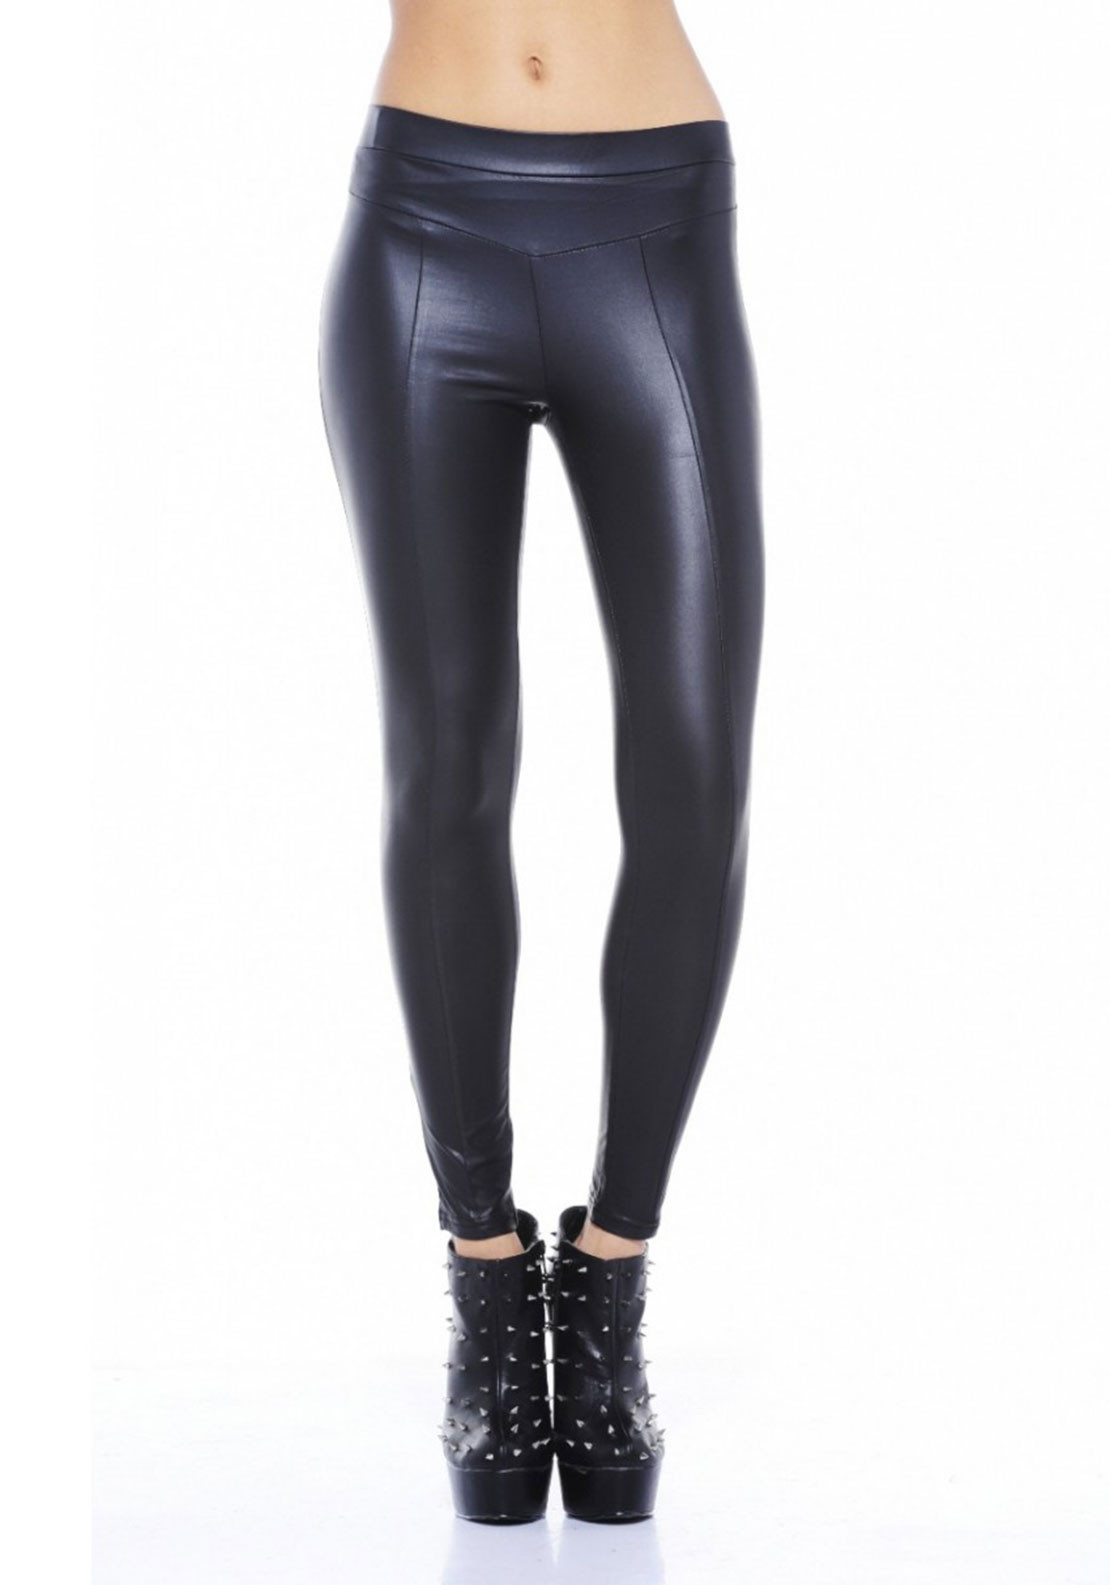 AX Paris Wet Look Leggings, Black